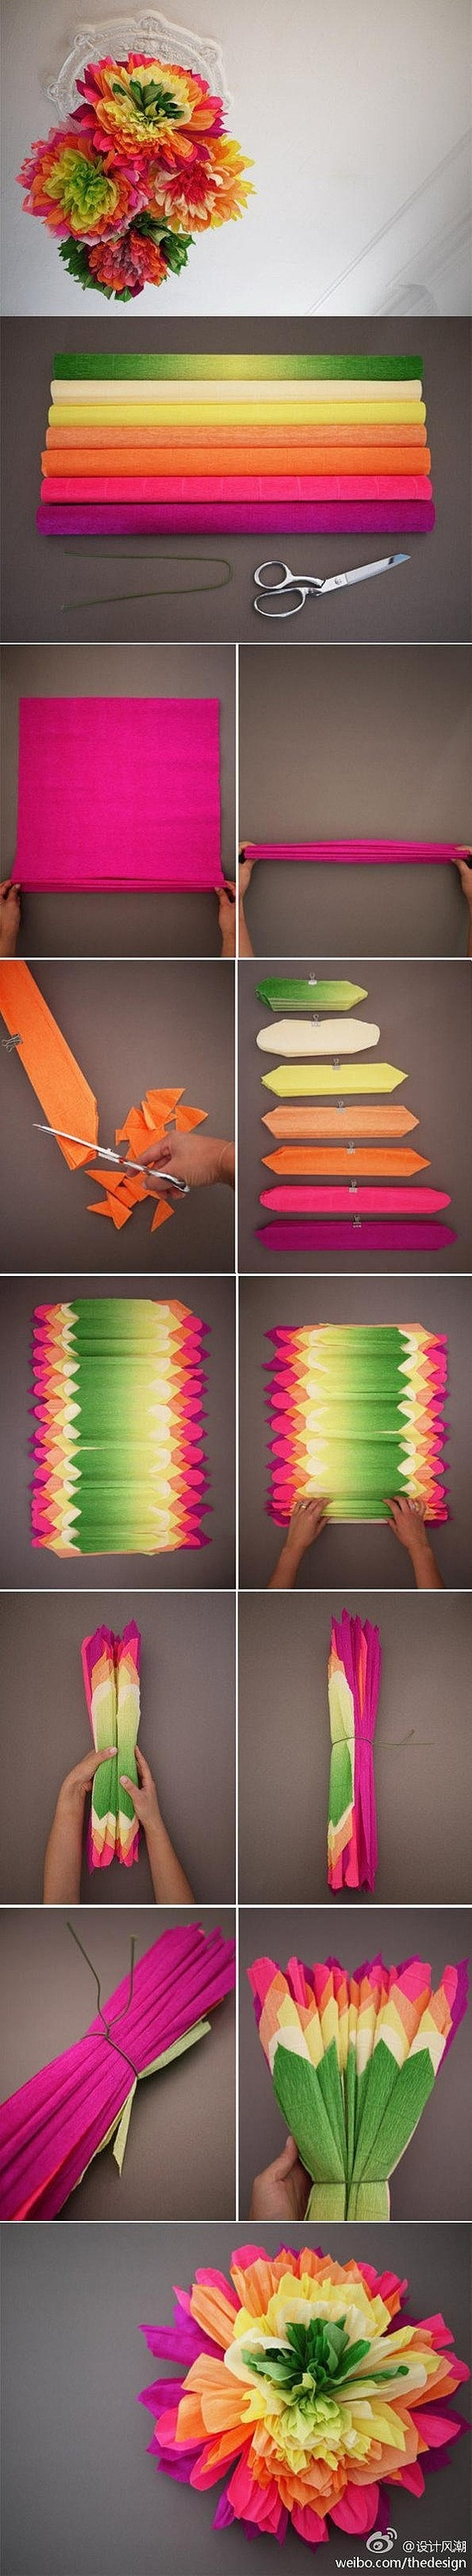 Wedding decorations using crepe paper  DIY colorful flowers decor for party or wedding   Decorations